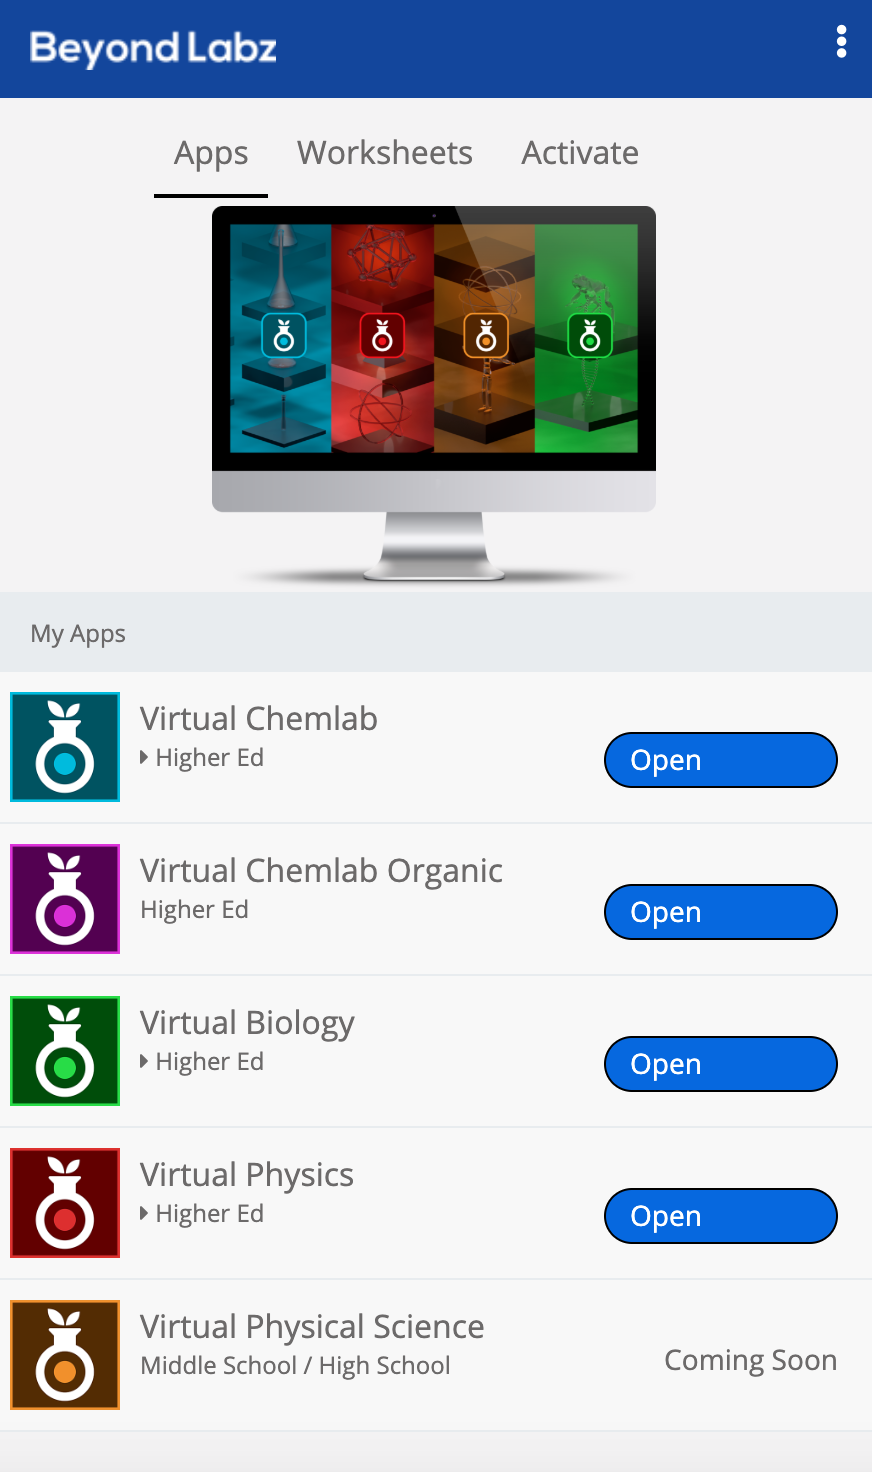 The focal point for accessing the Beyond Labz virtual labs and accompanying lab activities.